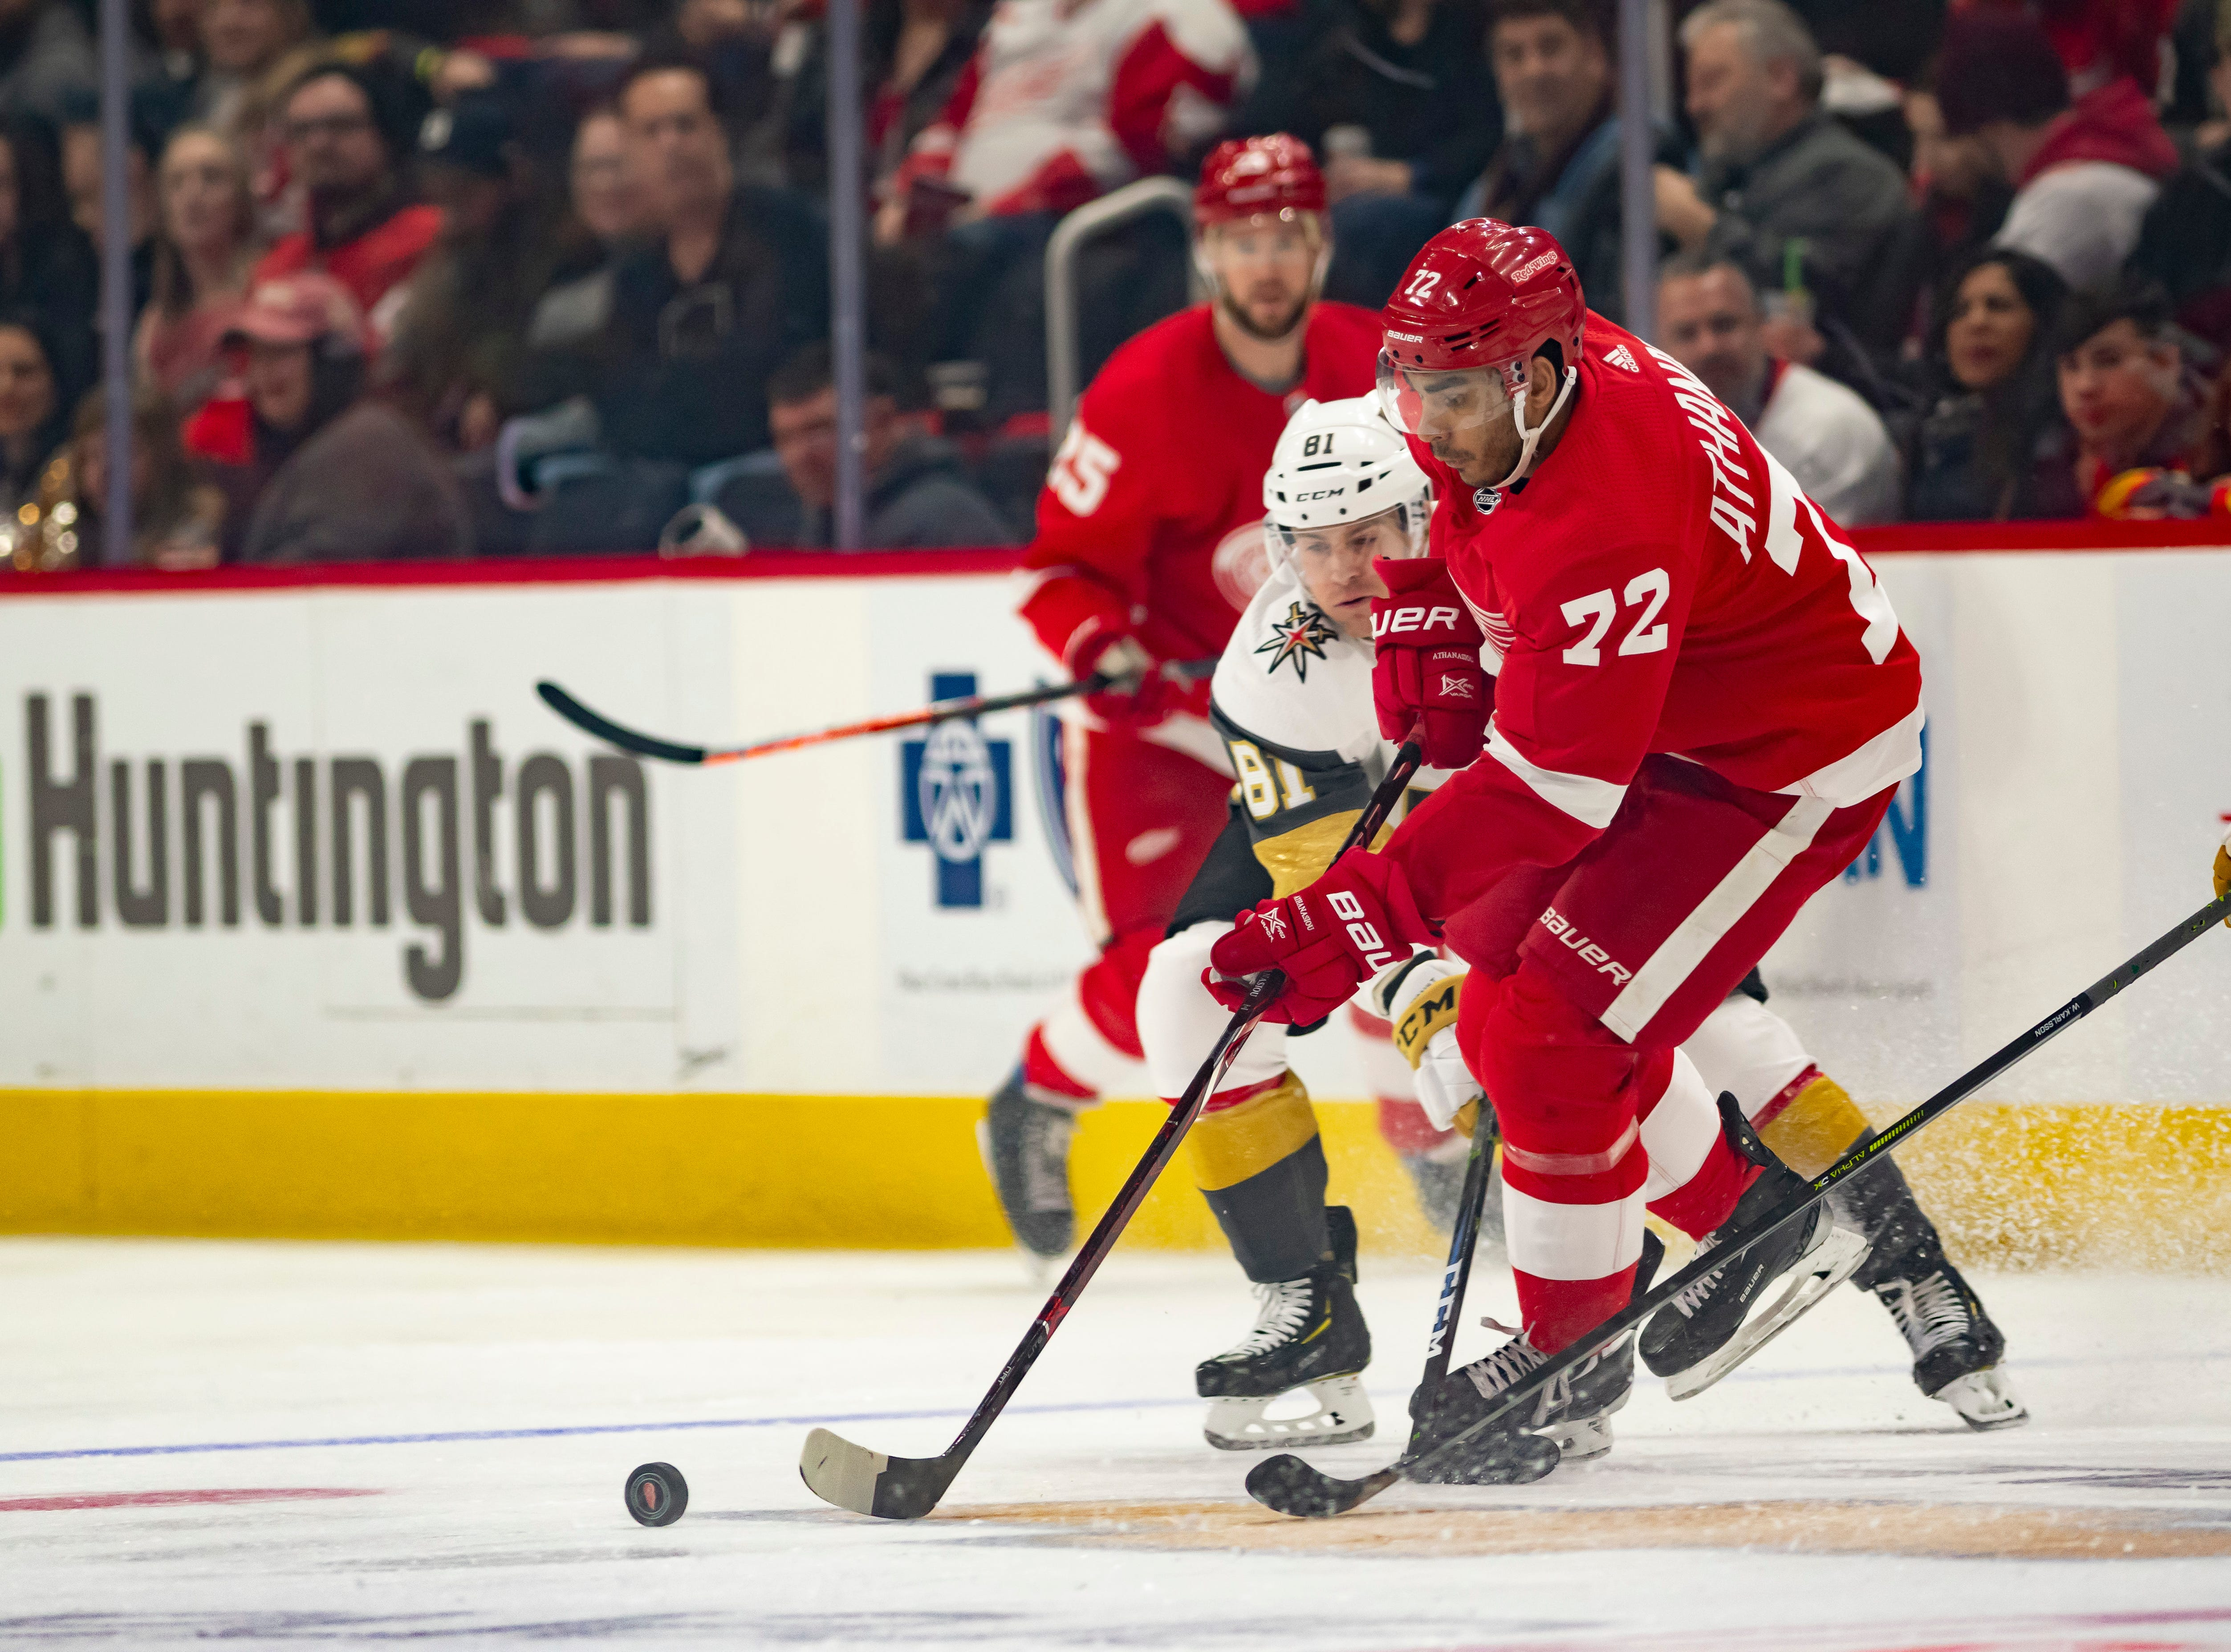 Detroit center Andreas Athanasiou keeps the puck away from Vegas center Jonathan Marchessault in the first period.